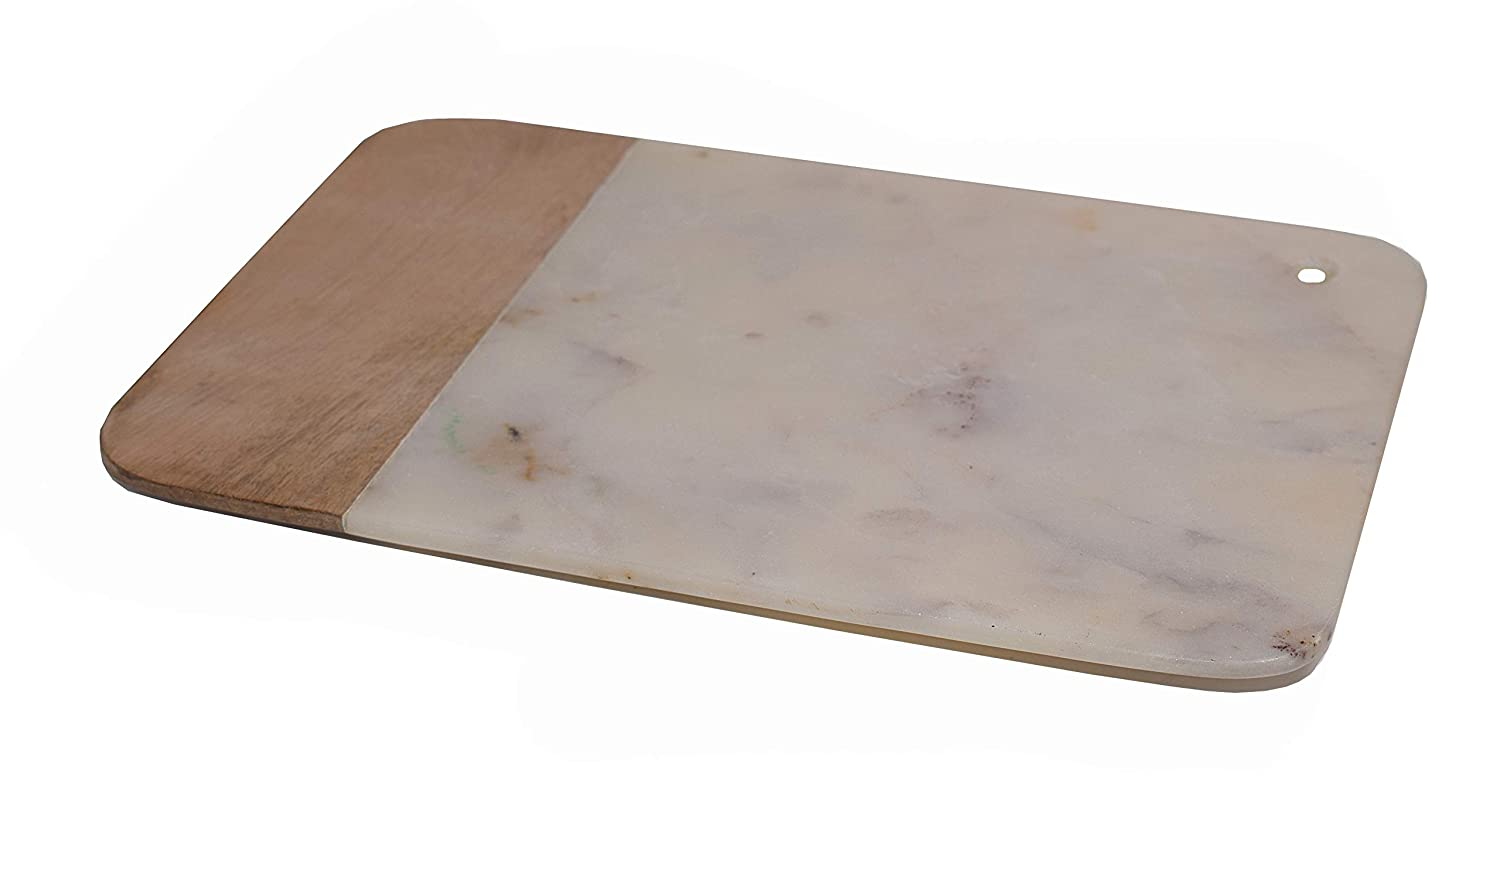 Hashcart Wood and White Marble Chopping Board, Chopper, Rectangular Cutting Board | for Bread, Fruits,Vegetables Meat and Cheese Serving Tray